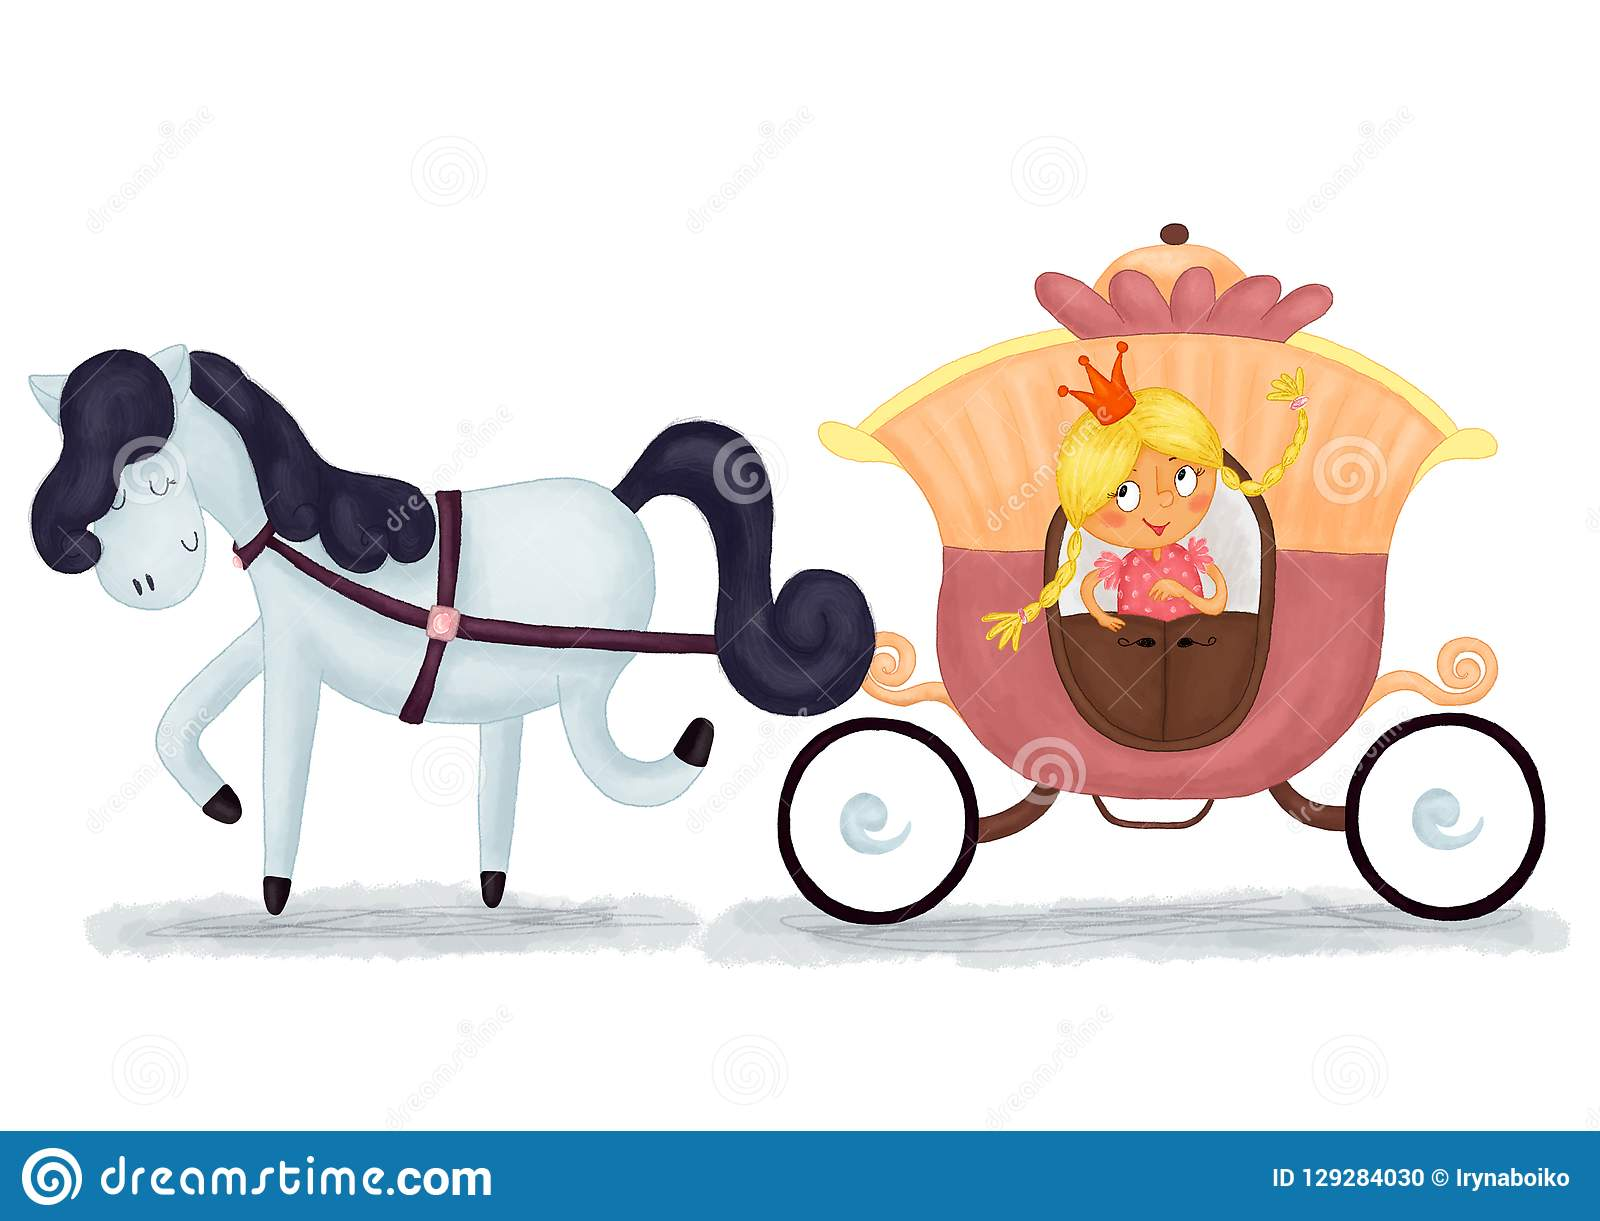 Hand Drawn Cute Cartoon Little Princes And Horse Drawn Carriage Nursery Illustration Stock Illustration Illustration Of Cartoon Design 129284030